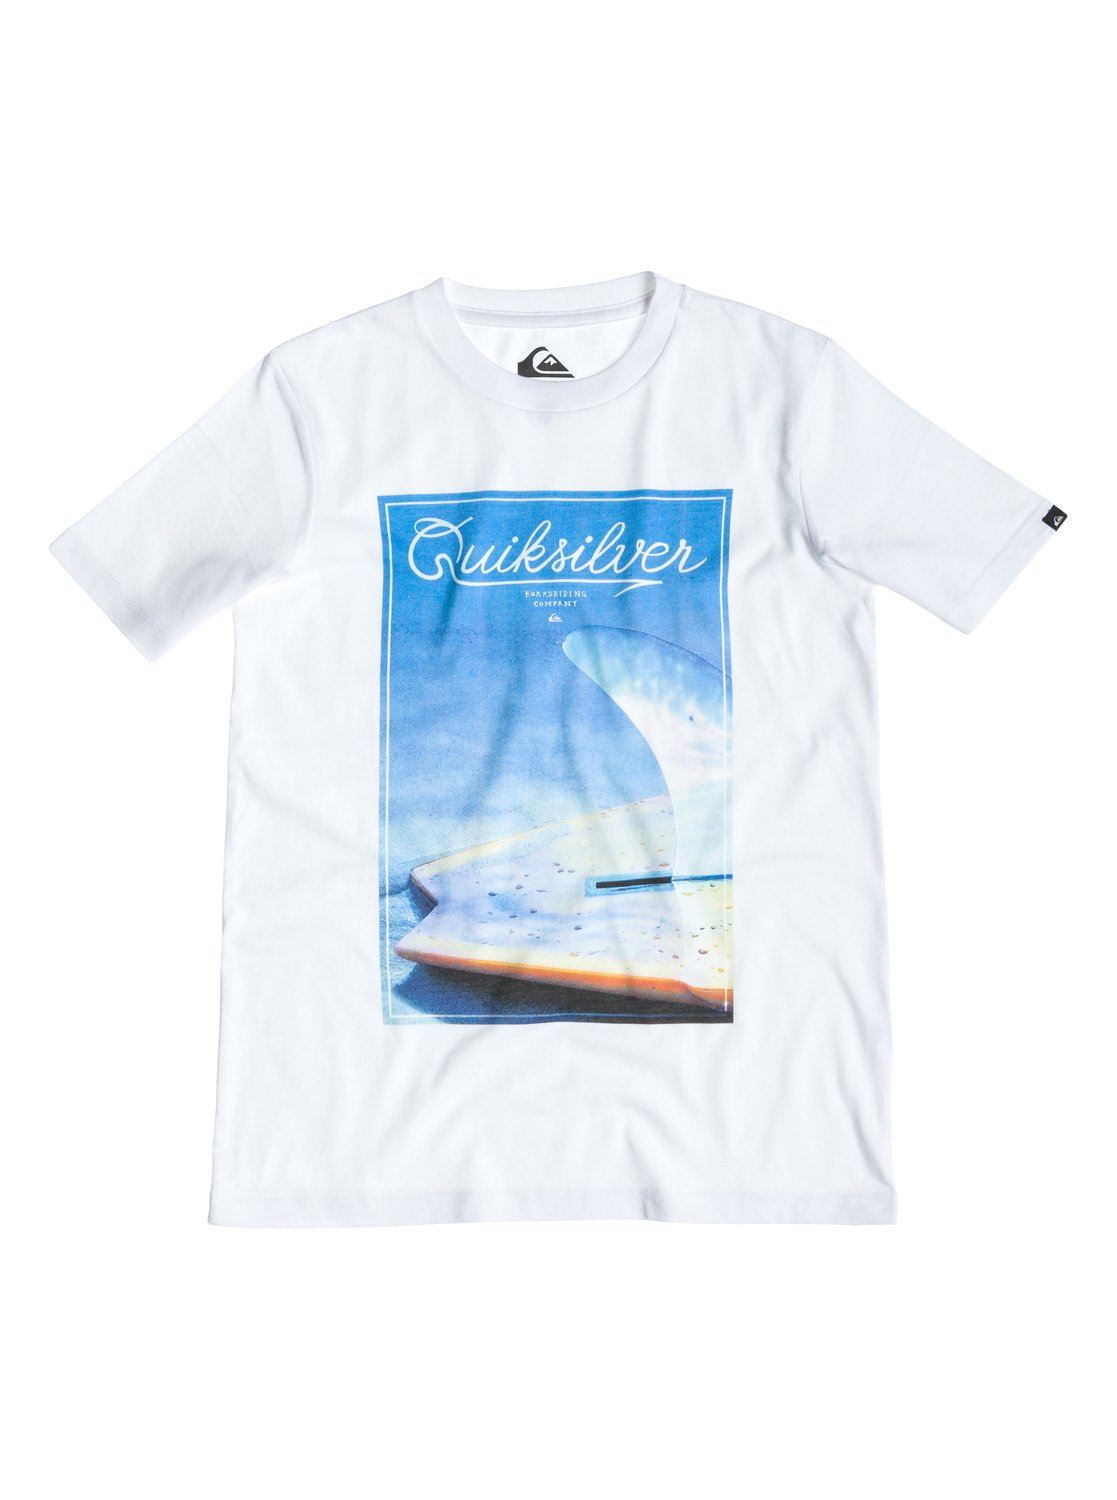 Classic Tee Youth A26 - Quiksilver�������� � �������� ������� ��� ��������� �� Quiksilver � ������� �� ��������� ����� 2015. ��������������: ������ ����������� �������� (160 �/��. �), ����������� ����, ����� Quiksilver �� ������.<br>